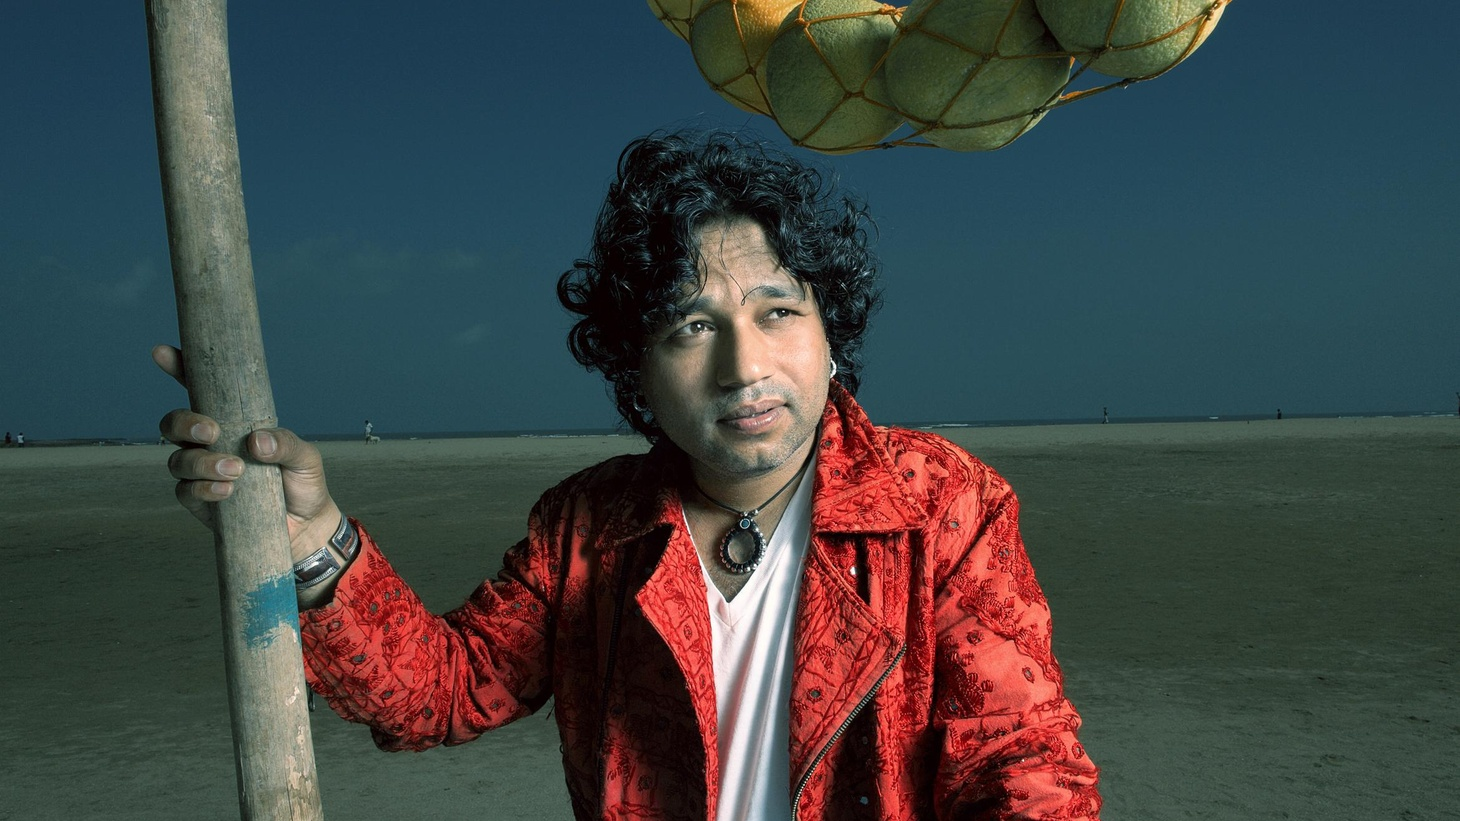 One of the biggest stars of Indian popular music today. Kailash Kher's strong folk sensibilities combined with lyrics that invoke Sufi mystical dimensions have captivated millions in South Asia...